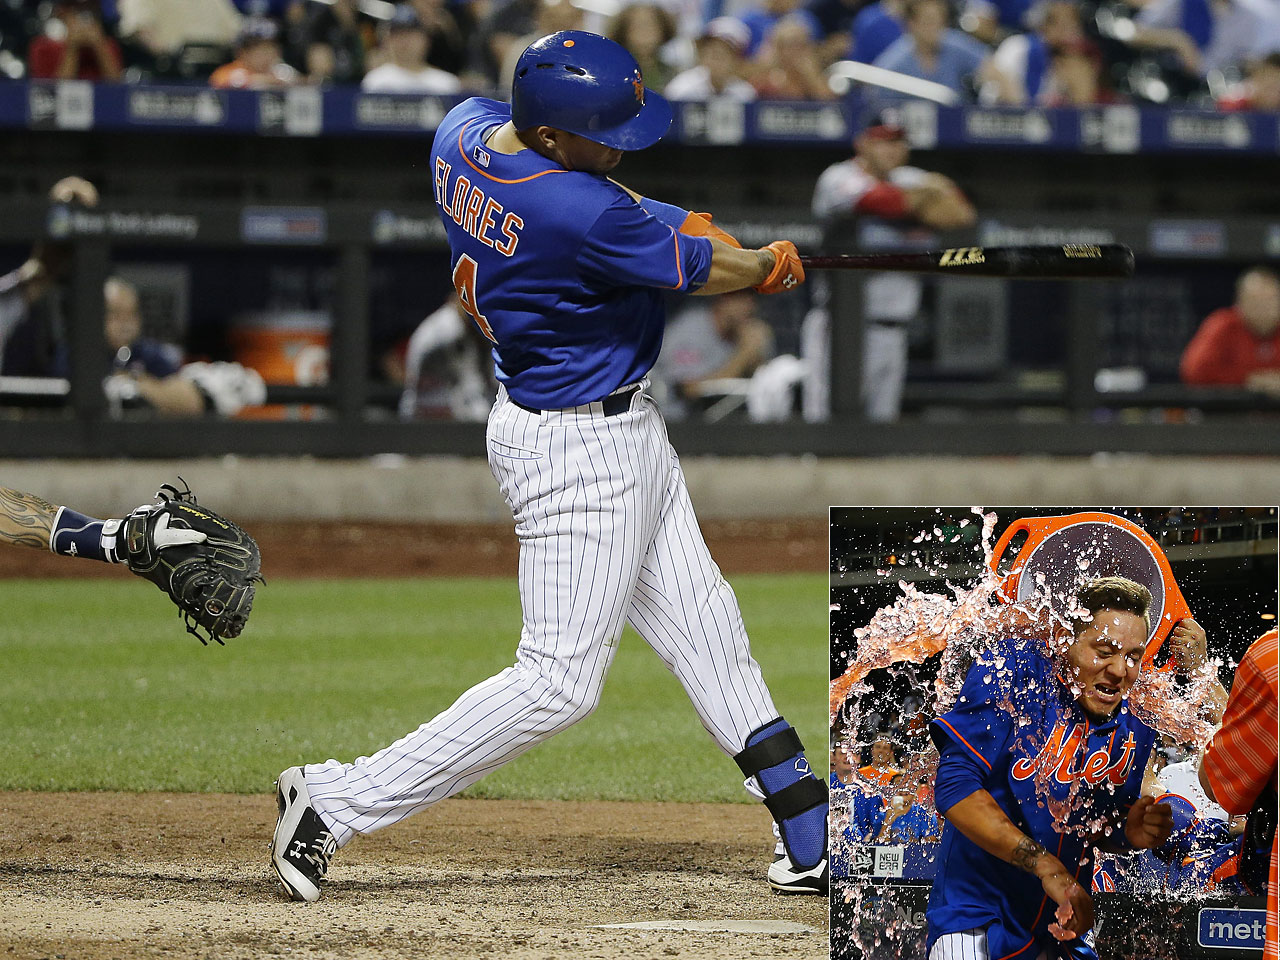 A few days after sobbing while positioned in the field and thinking he had been traded from the Mets, Wilber Flores belted a solo homer in the 12th inning to give New York a 2-1 win over the Washington Nationals on July 31.